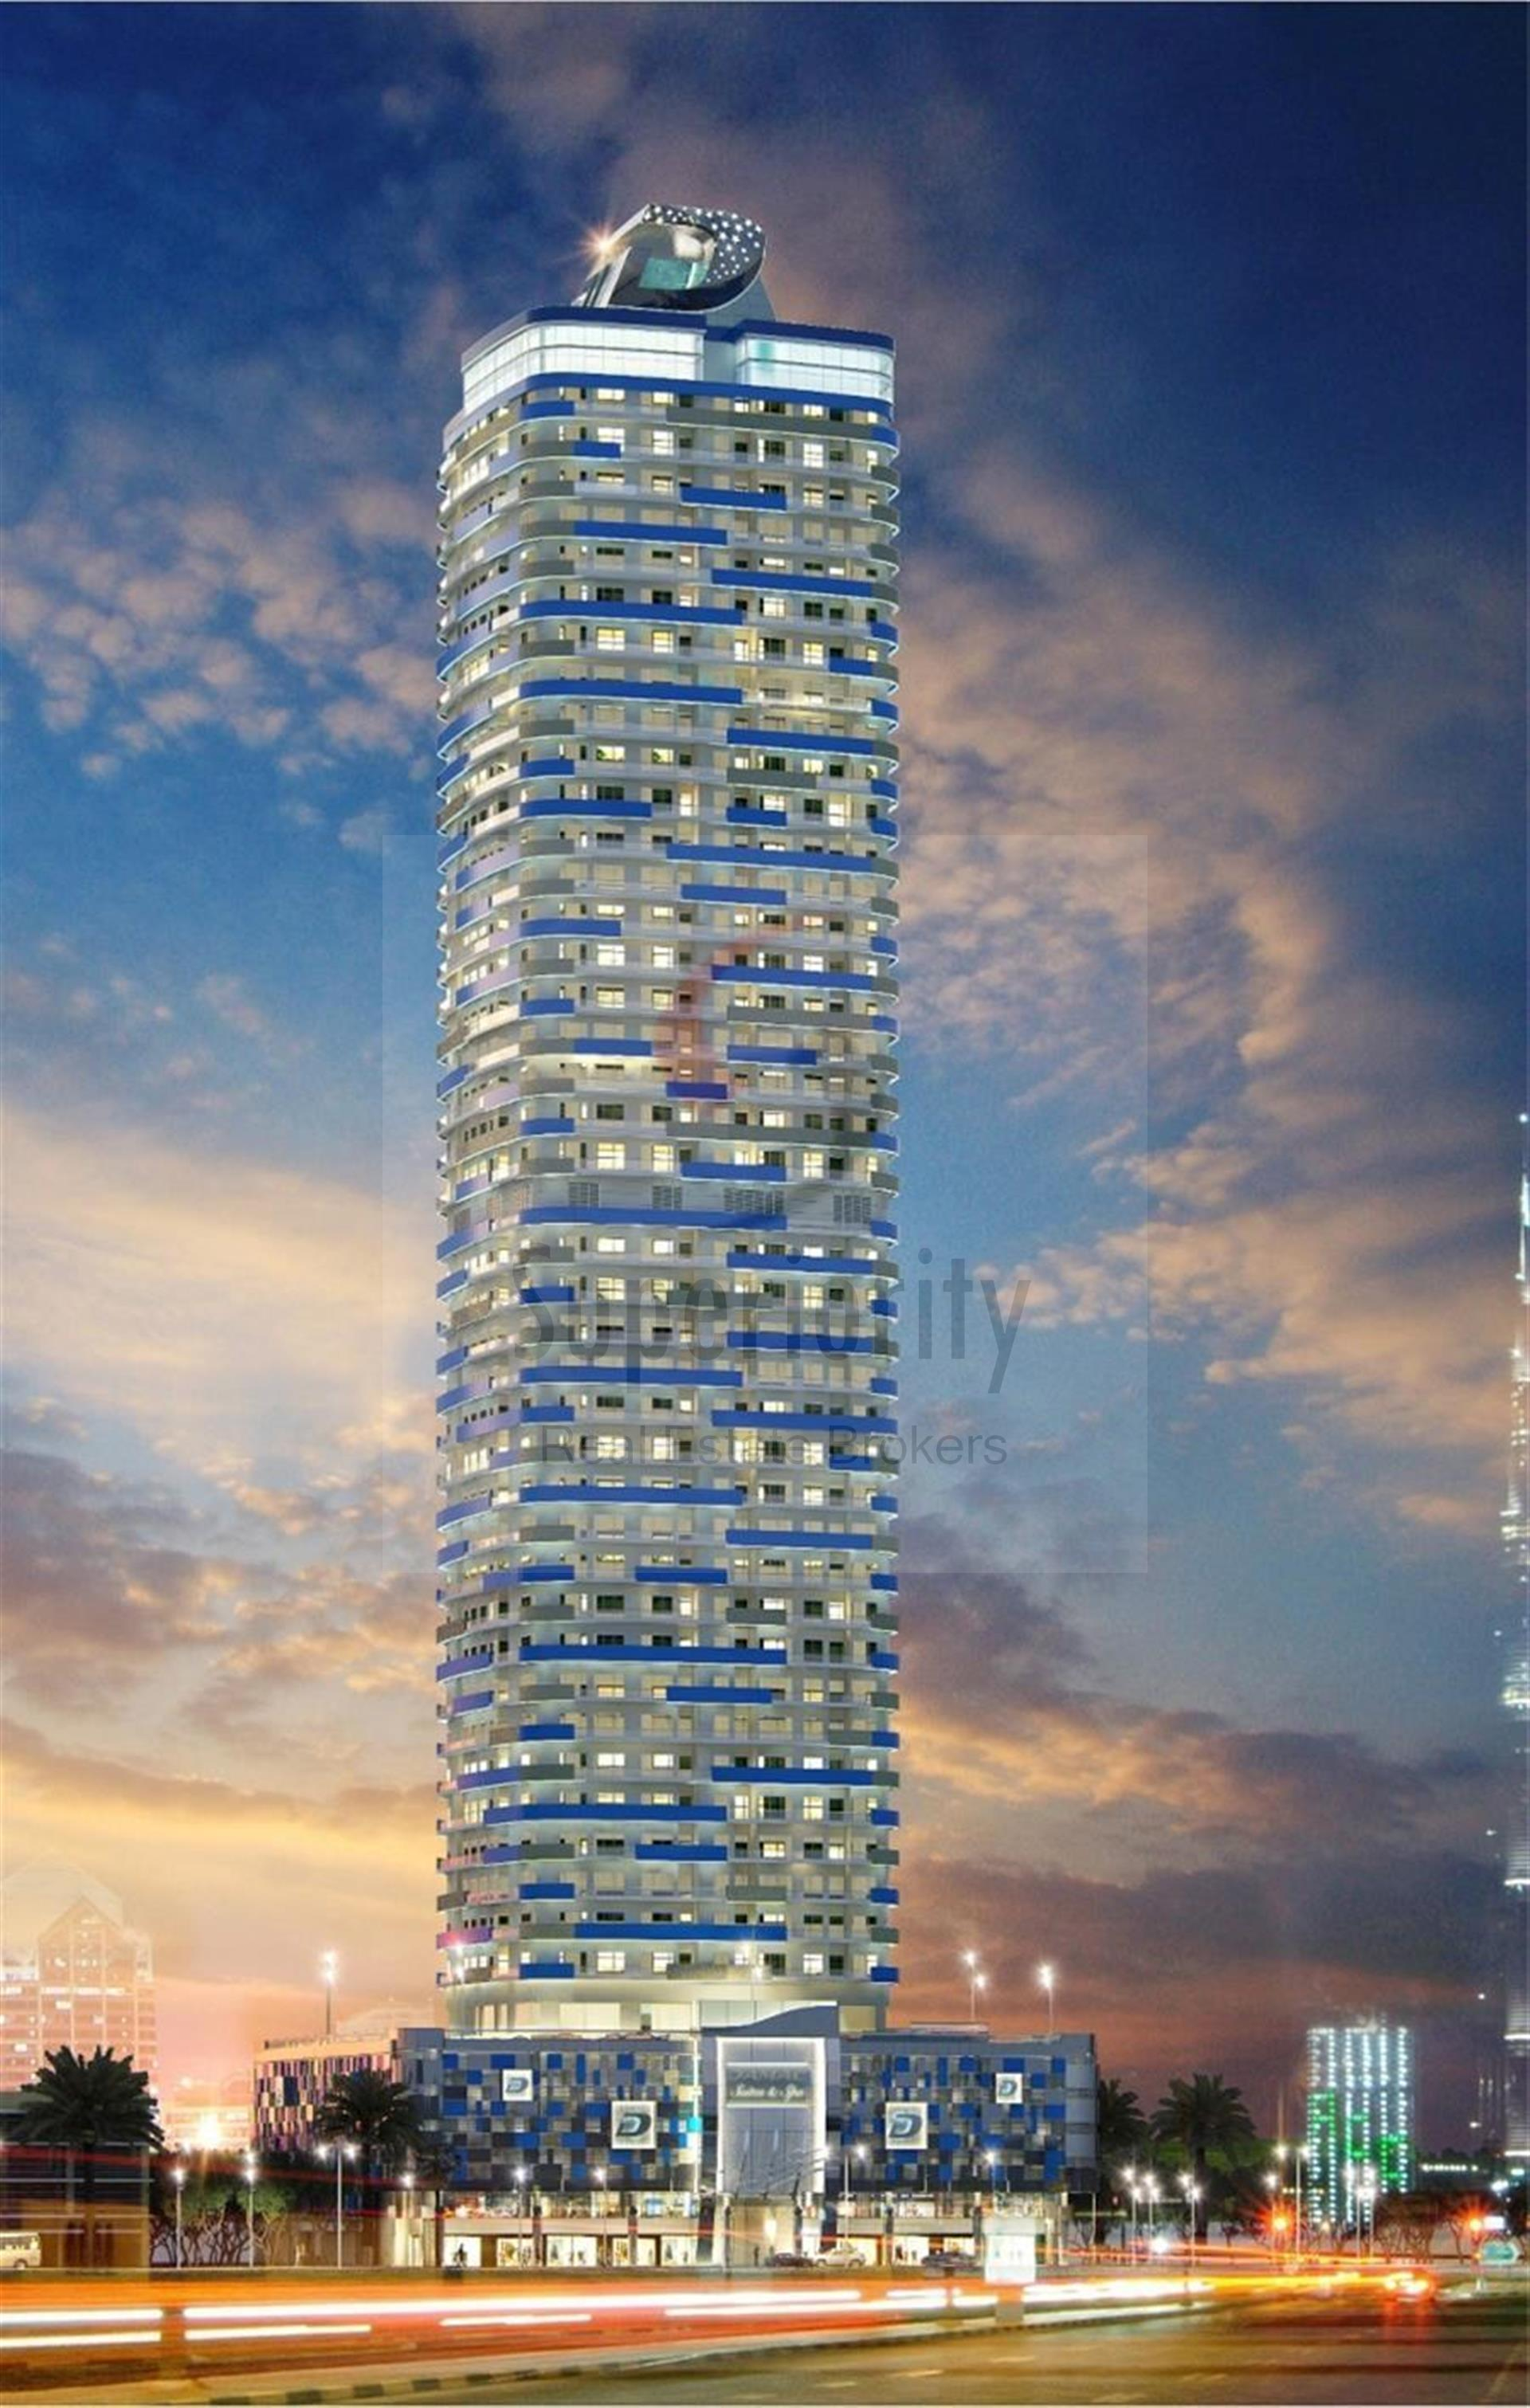 Signature Tower Hotel